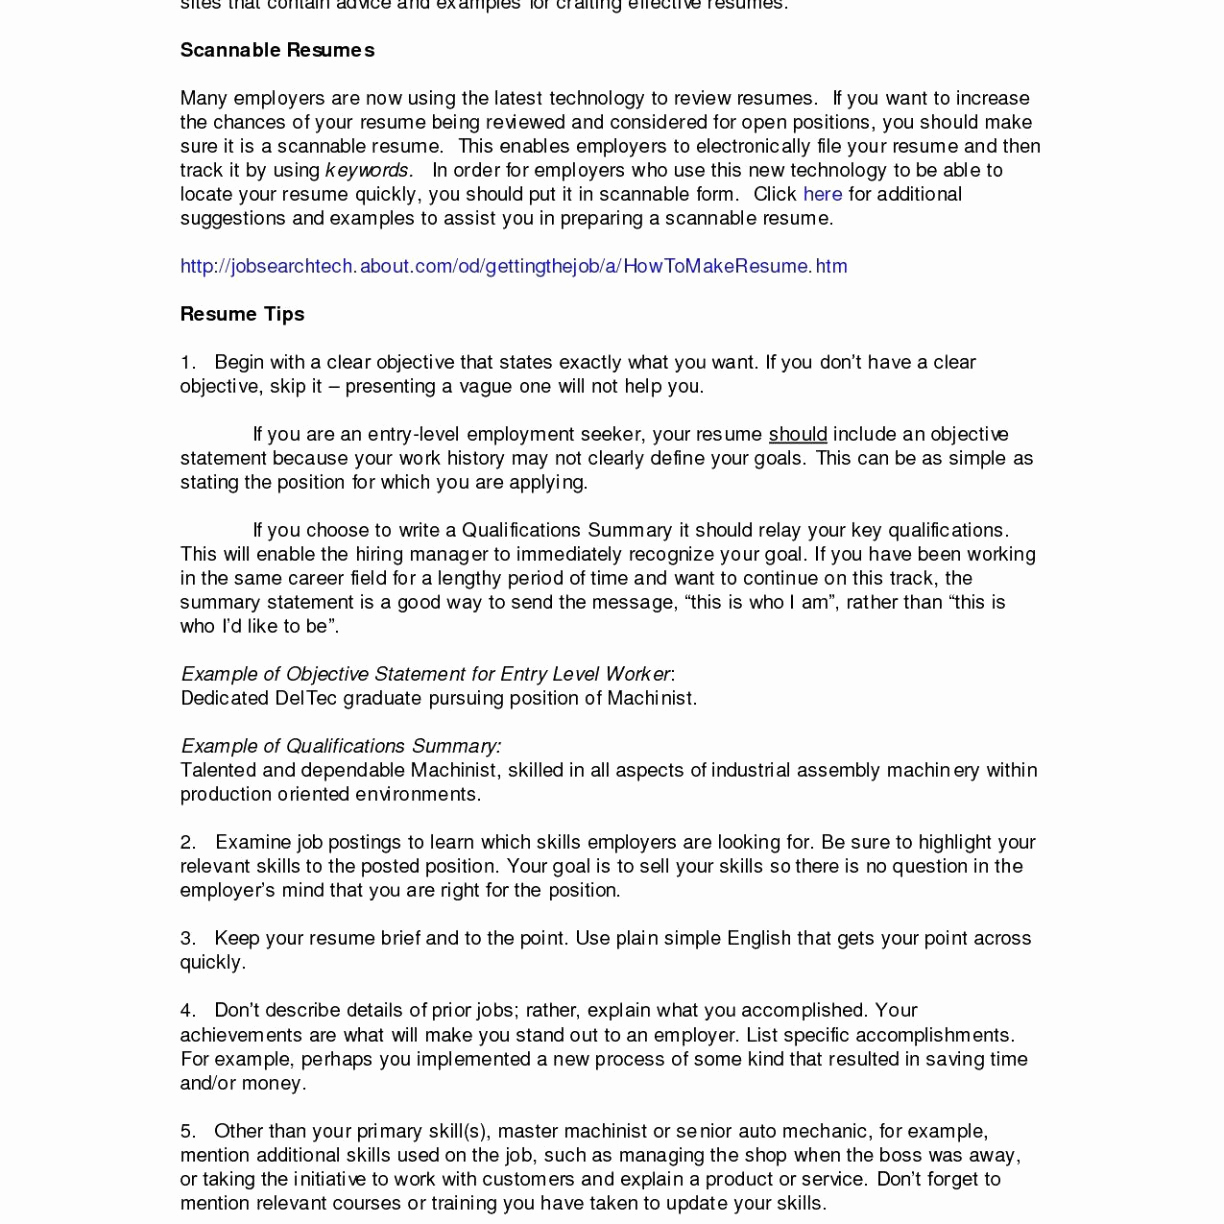 Product Introduction Letter Template - Accounting Cover 2018 Product Introduction Letter Template Karyna